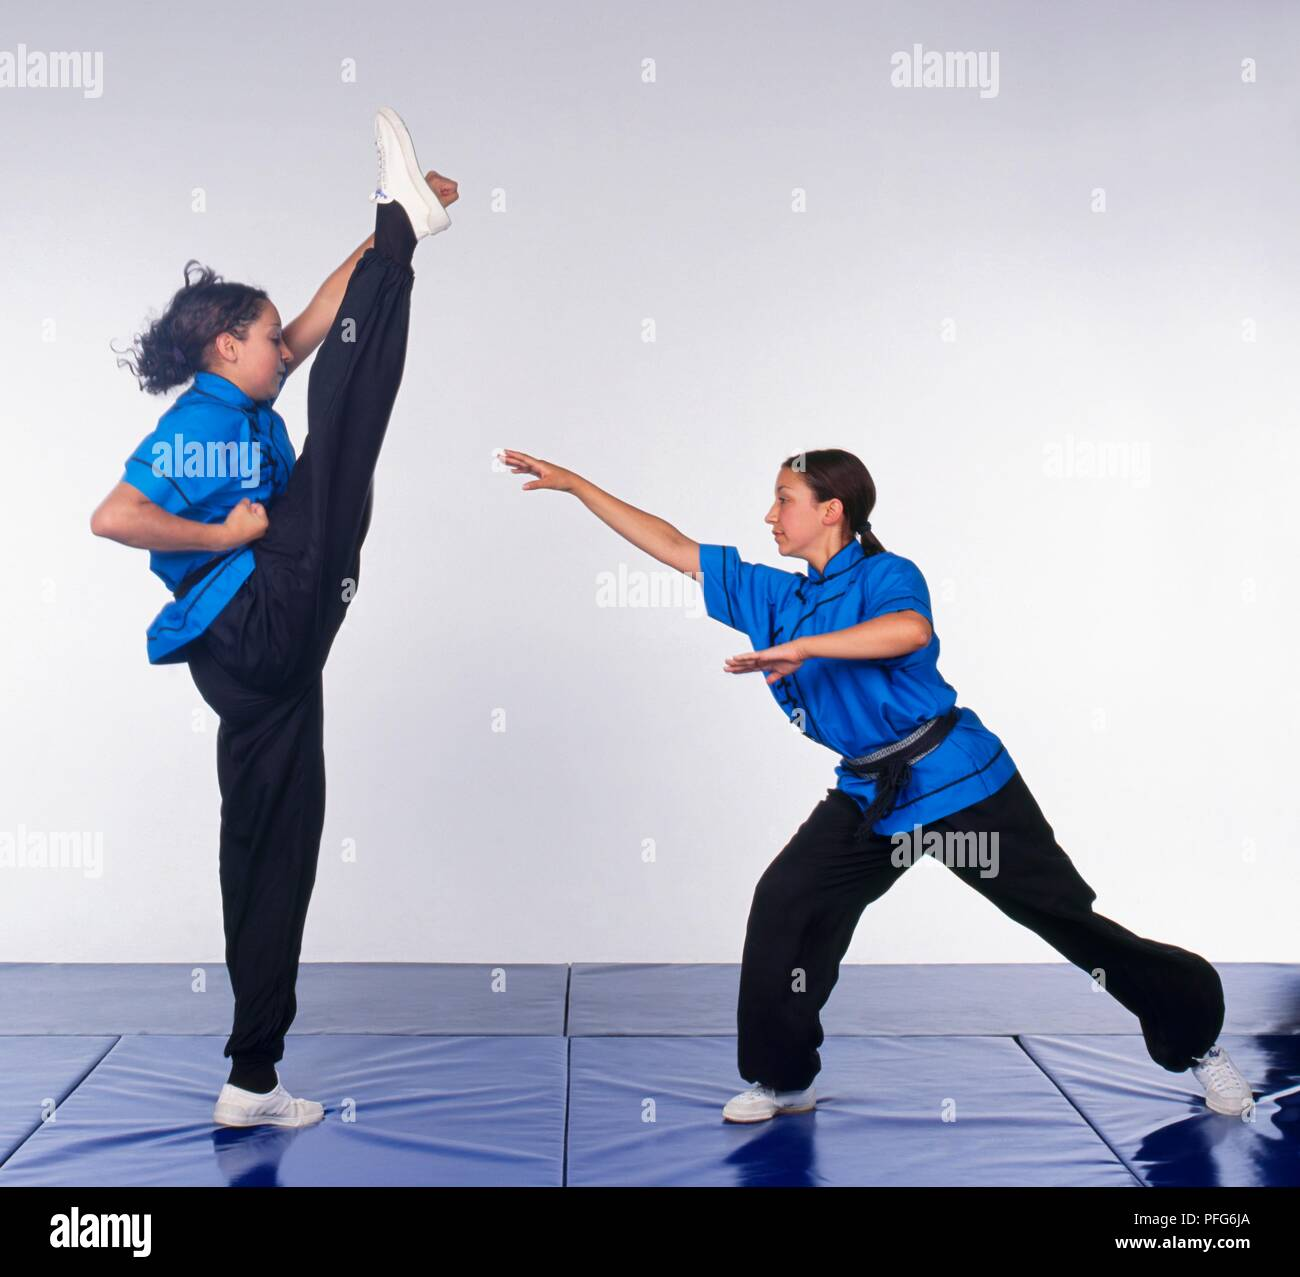 Girl performing axe kick, opponent stepping back Stock Photo